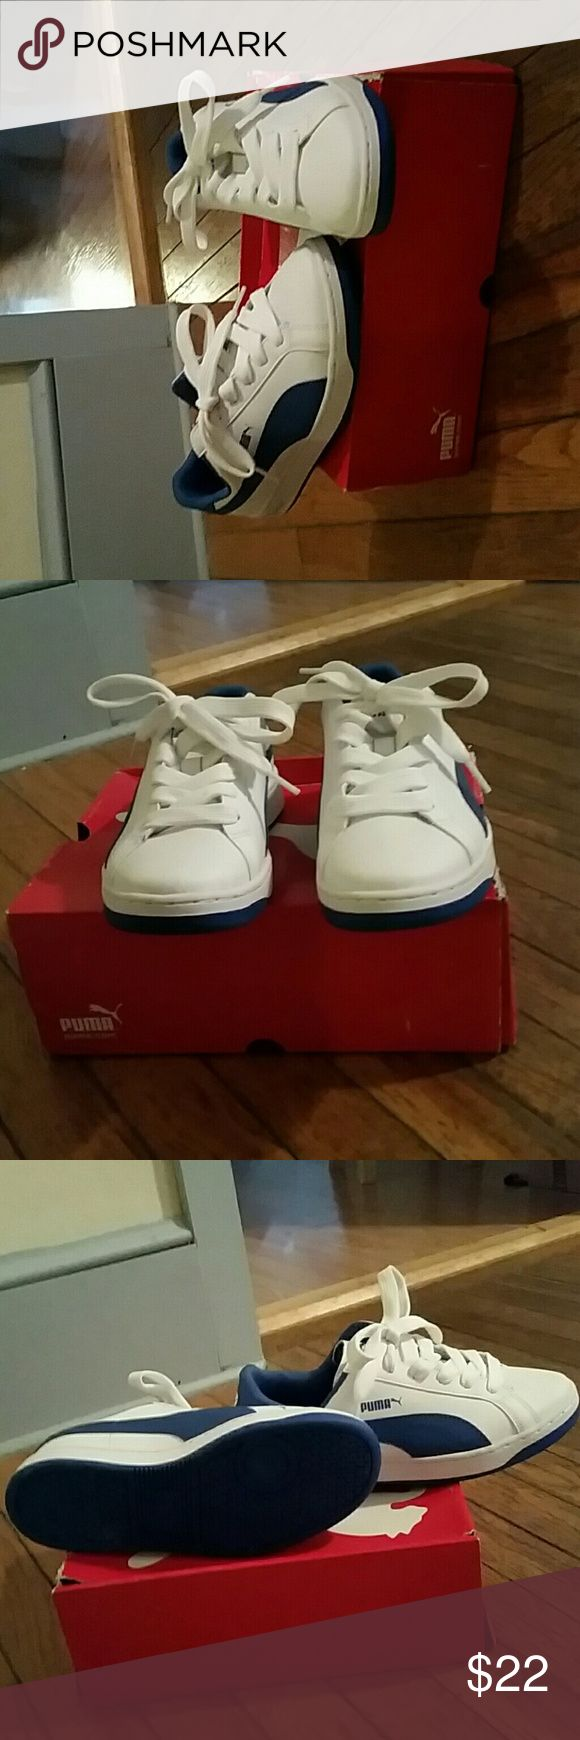 Cute white and royal blue Pumas Gently worn cute Pumas Boys Size 5 ,Womans size 7 Got to Go!! Puma Shoes Sneakers